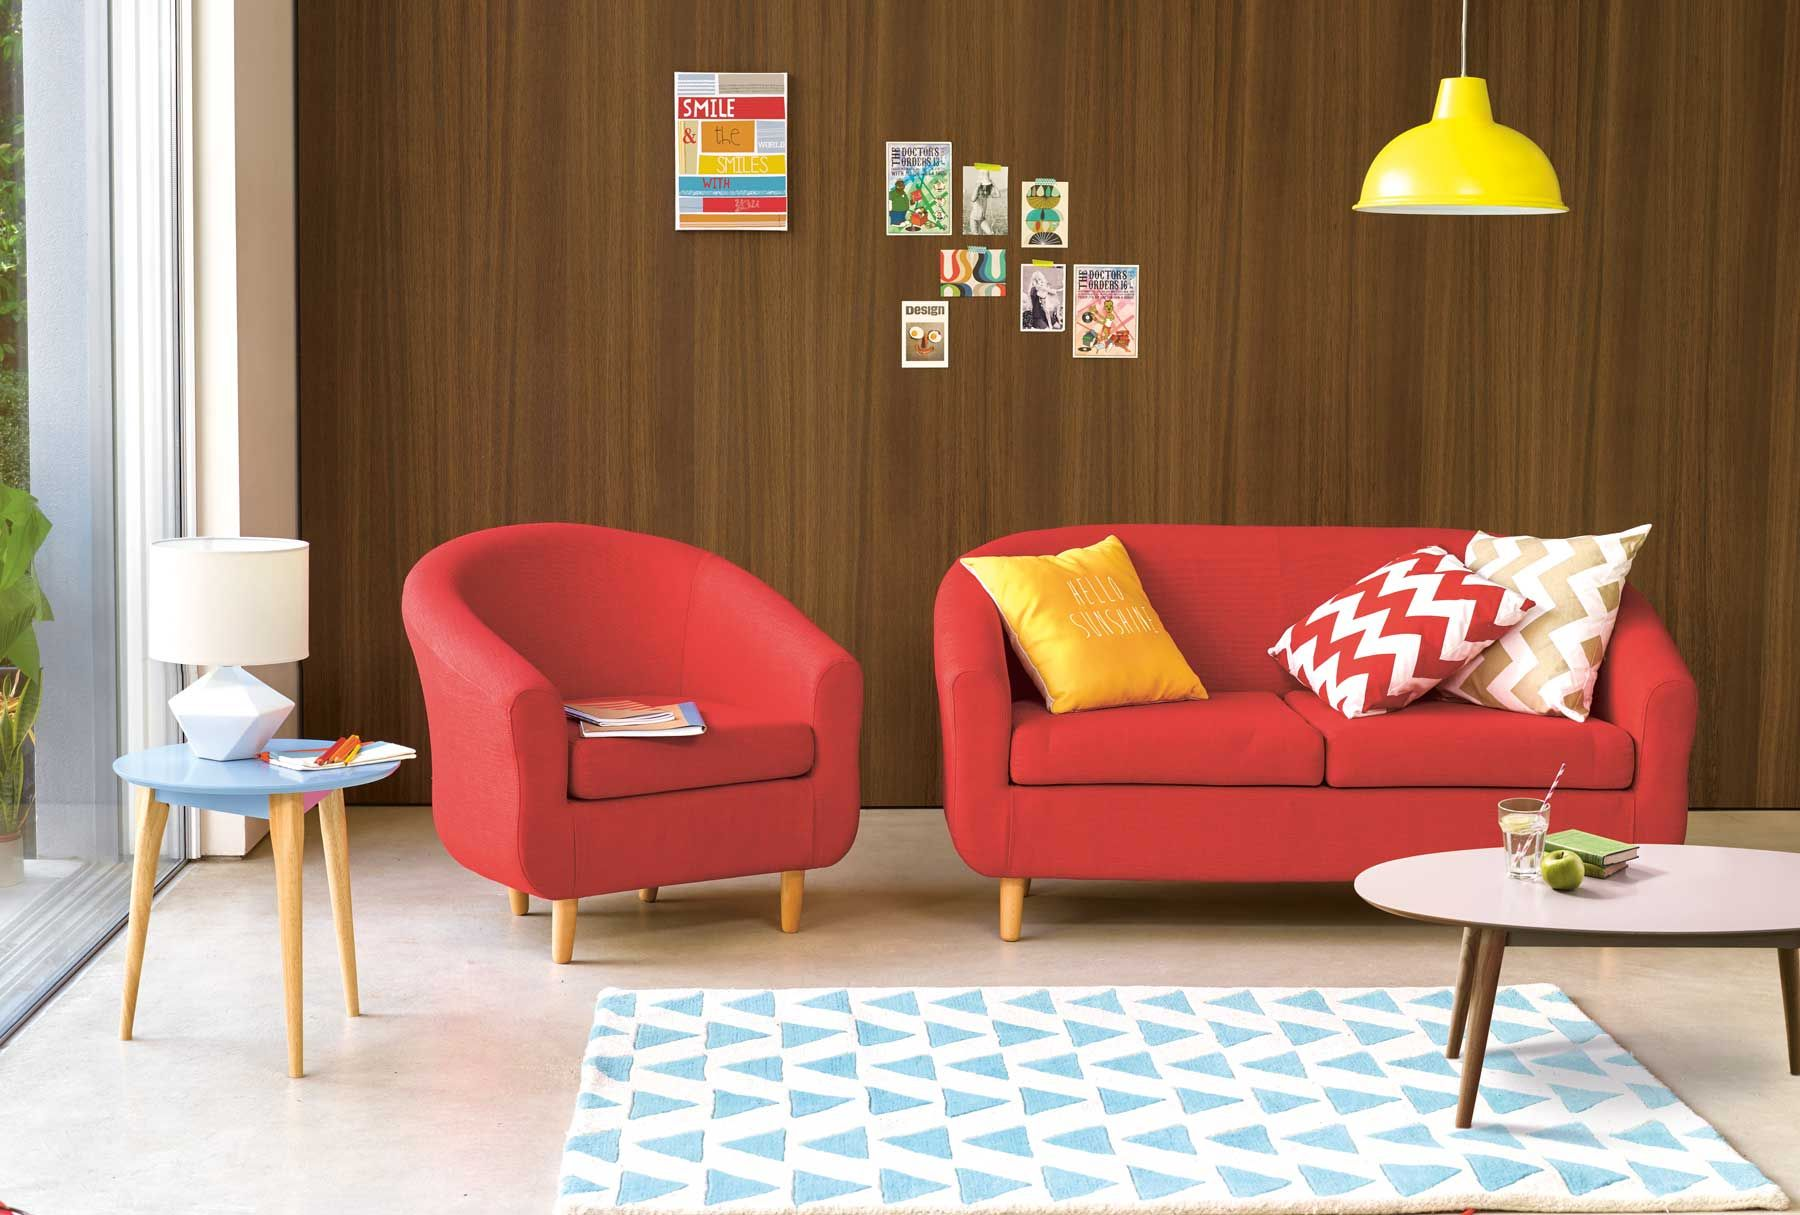 Midcentury Modern Retro Living Area Red Sofa Armchair Geometric Carpet Yellow Cushion